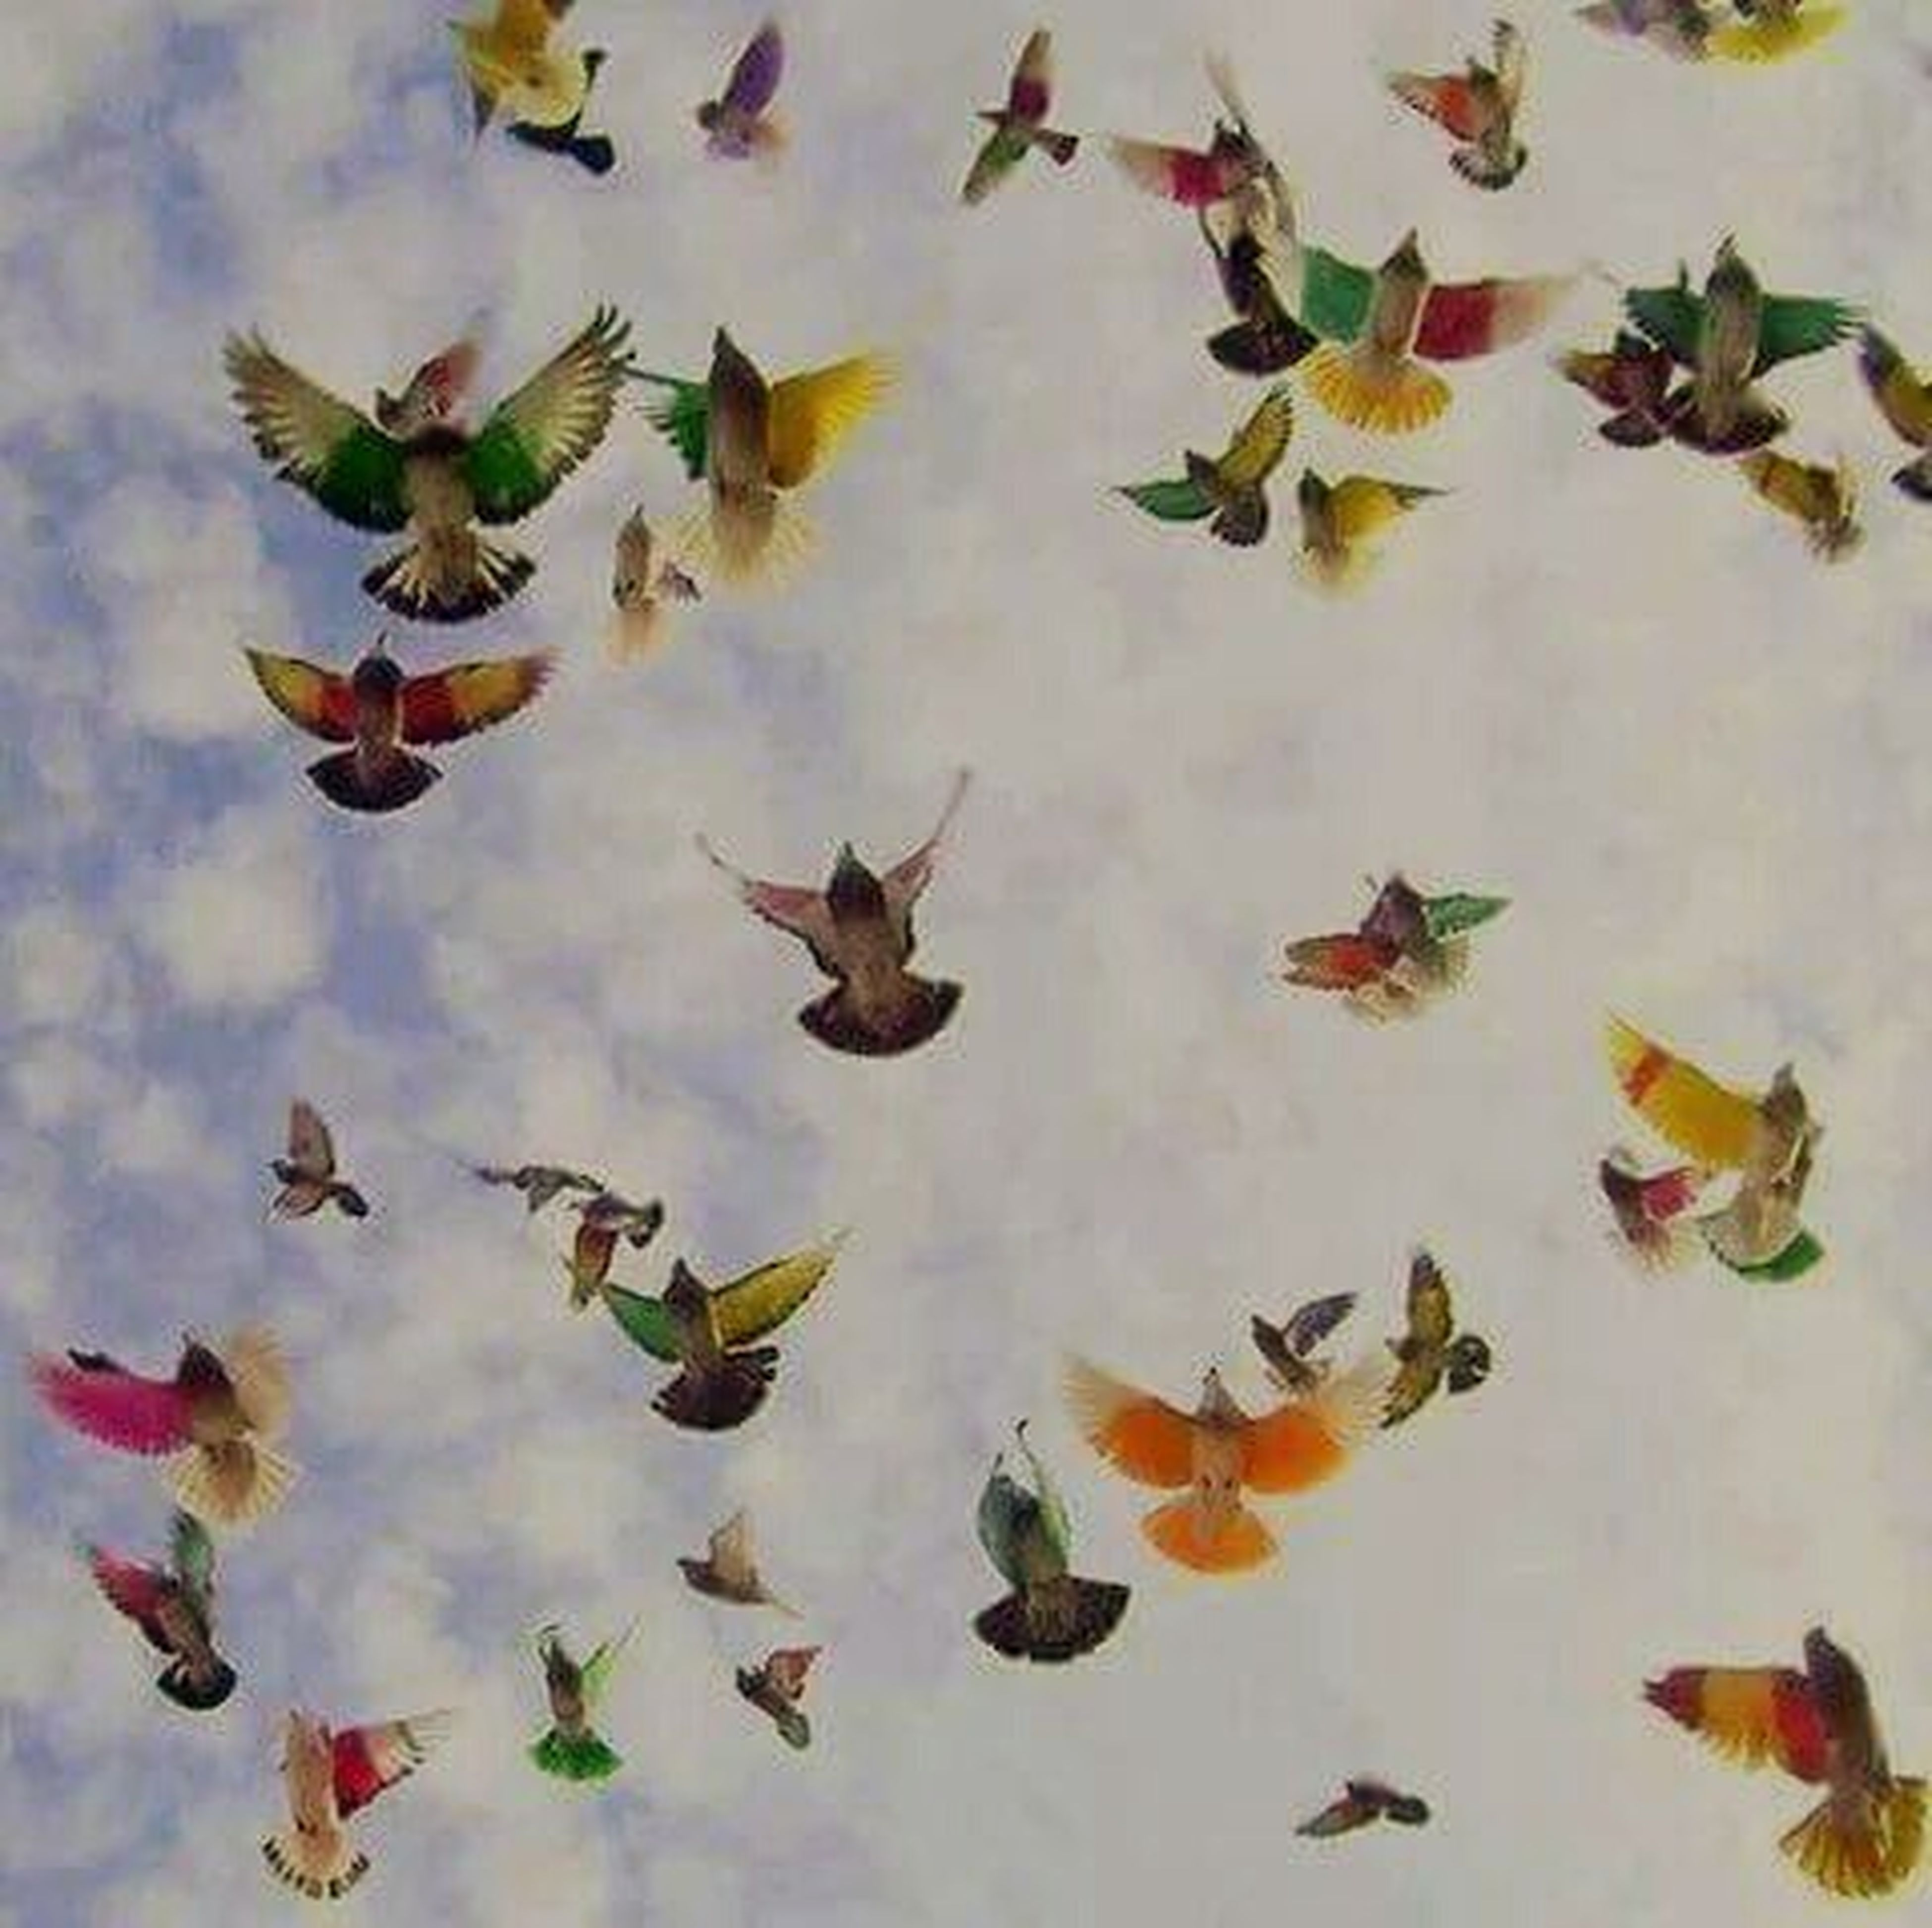 bird, animal themes, animals in the wild, flock of birds, wildlife, flying, multi colored, nature, medium group of animals, day, no people, low angle view, high angle view, outdoors, beauty in nature, abundance, variation, leaf